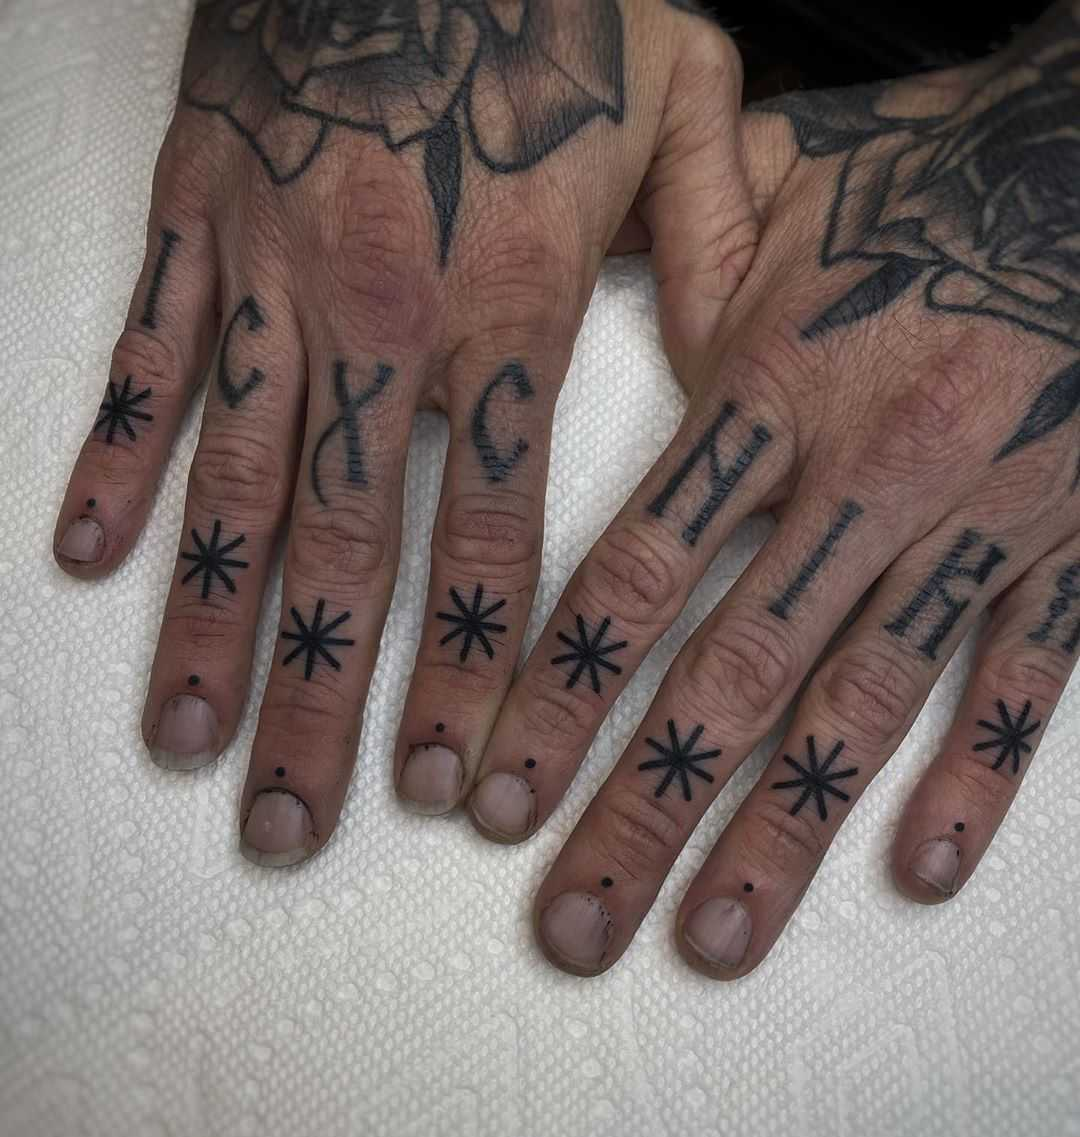 Upper knuckle tattoos by Mark Walker